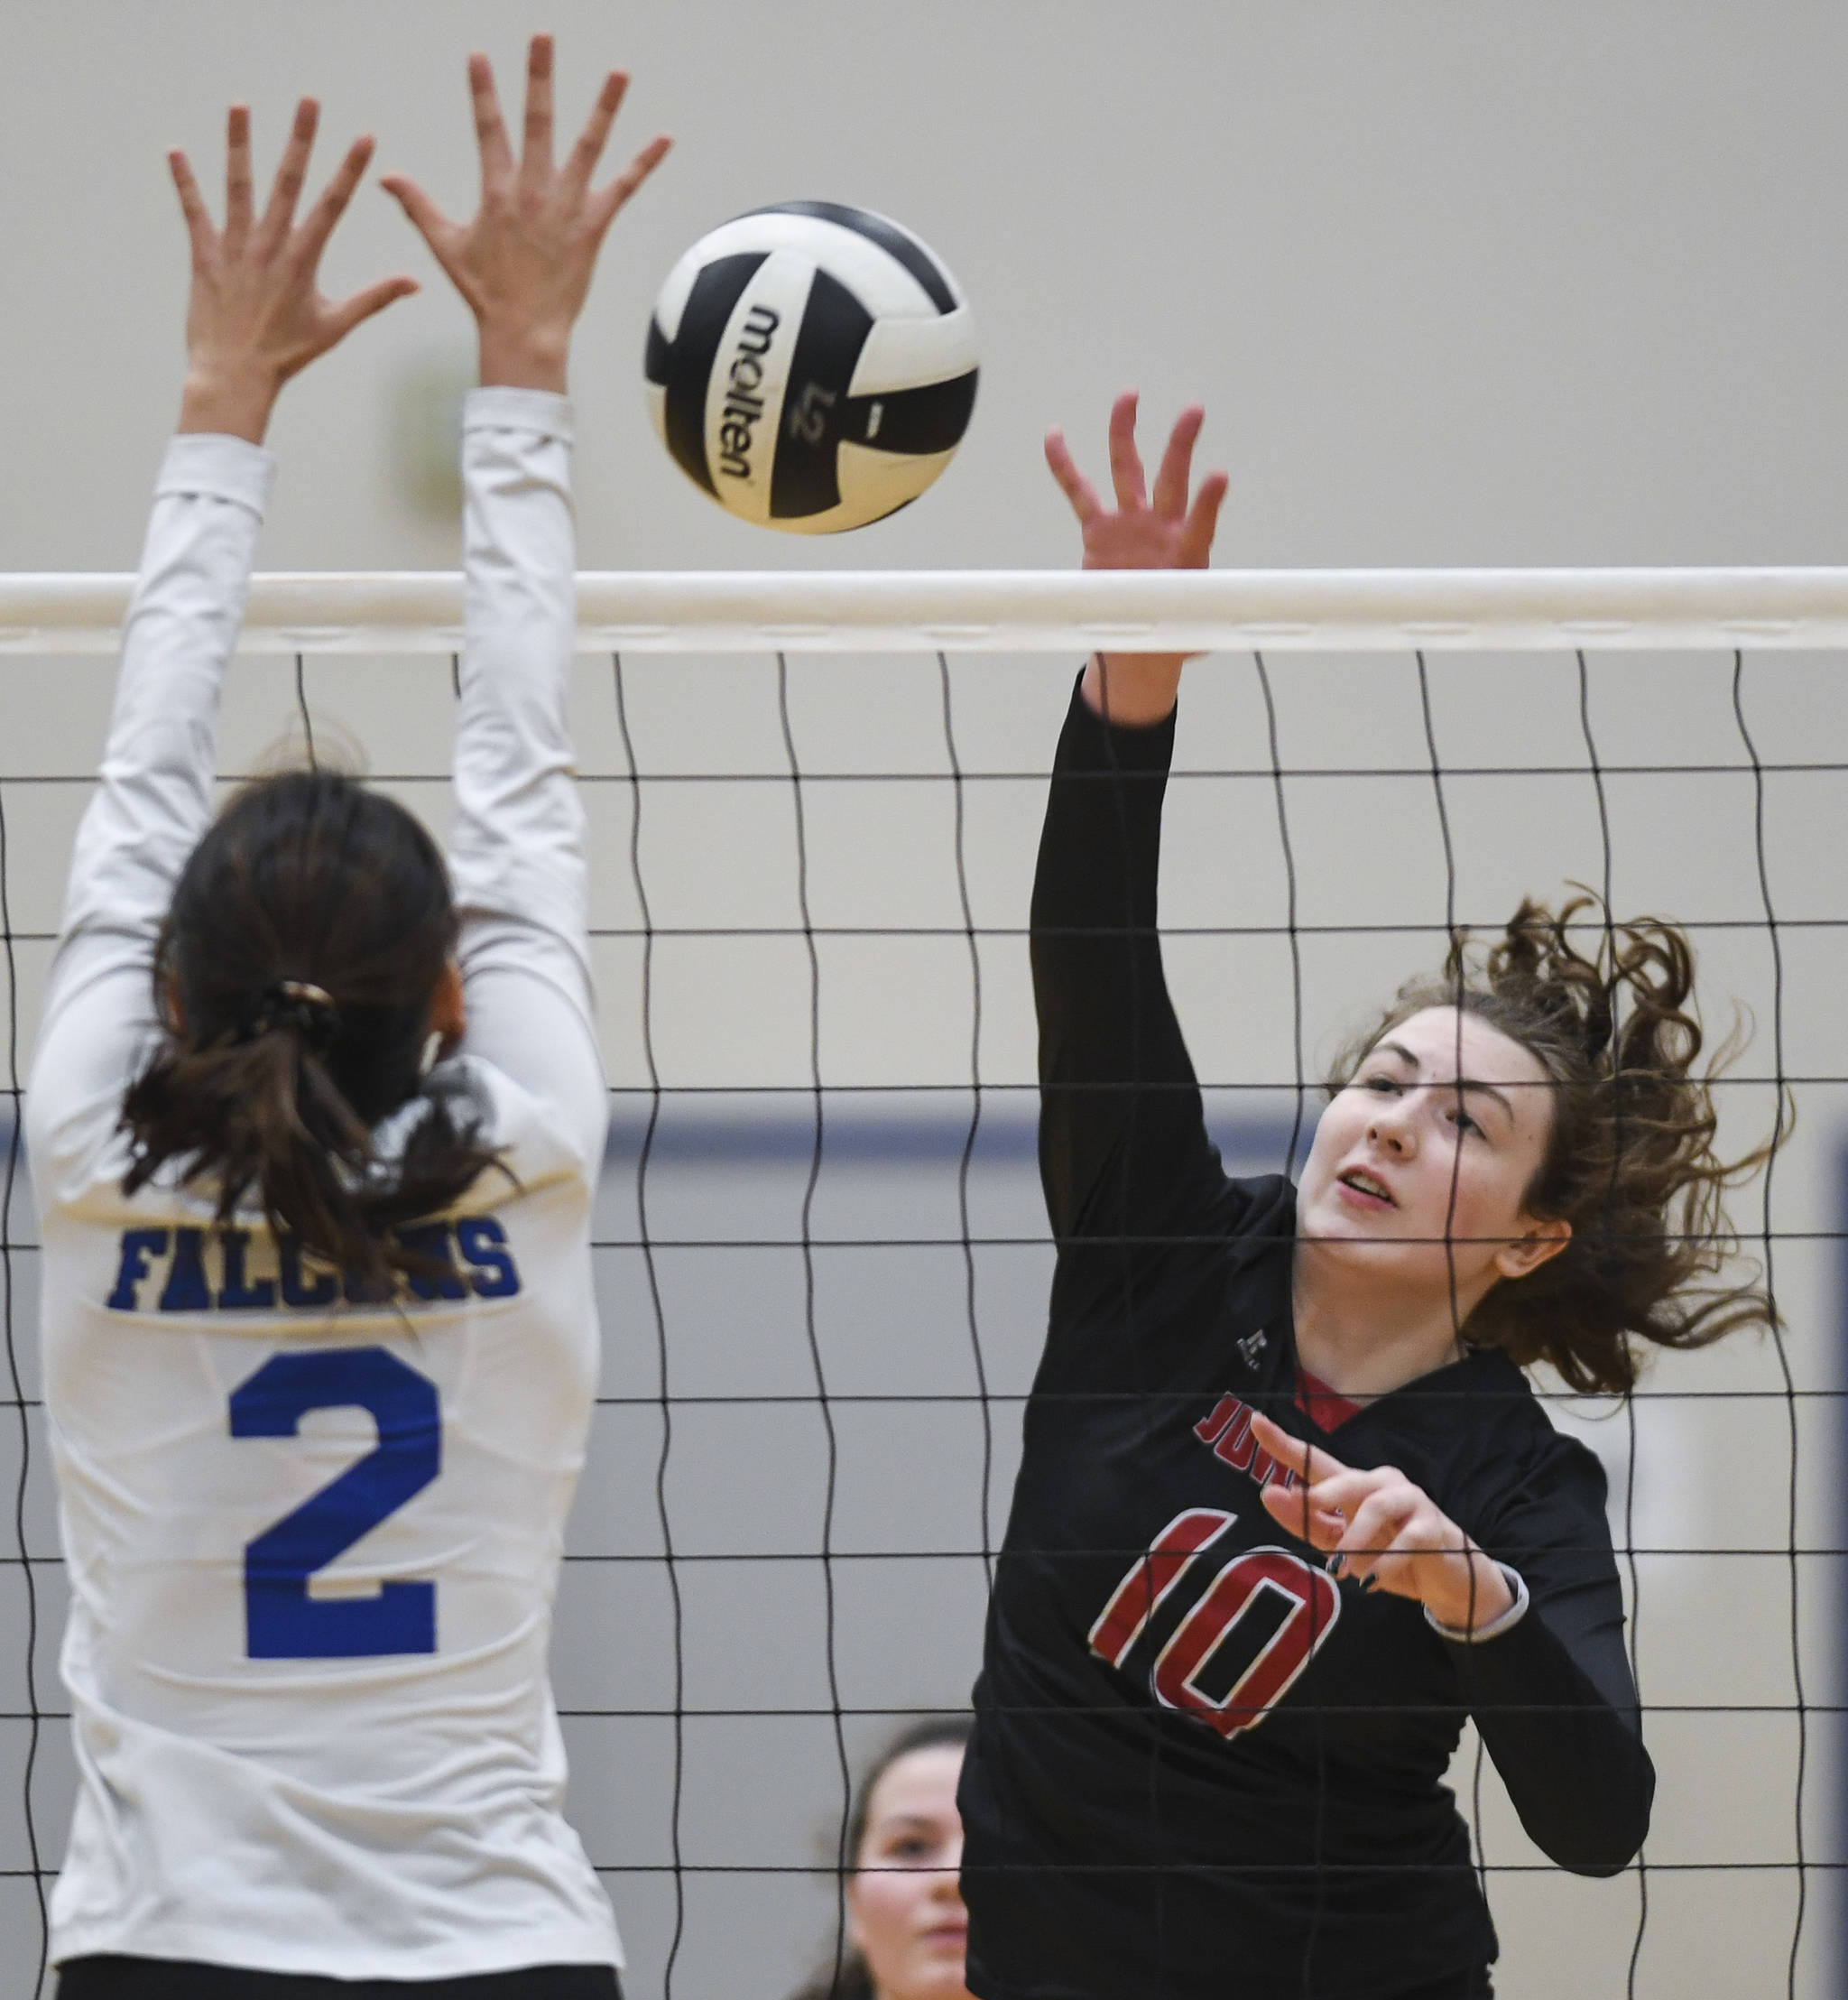 Juneau-Douglas' Merry Newman spikes the ball against Thunder Mountain's Amy Schoonover during the Region V Volleyball Tournament at Thunder Mountain High School on Friday, Nov. 8, 2019. JDHS won 25-22, 26-24, 25-20. (Michael Penn | Juneau Empire)